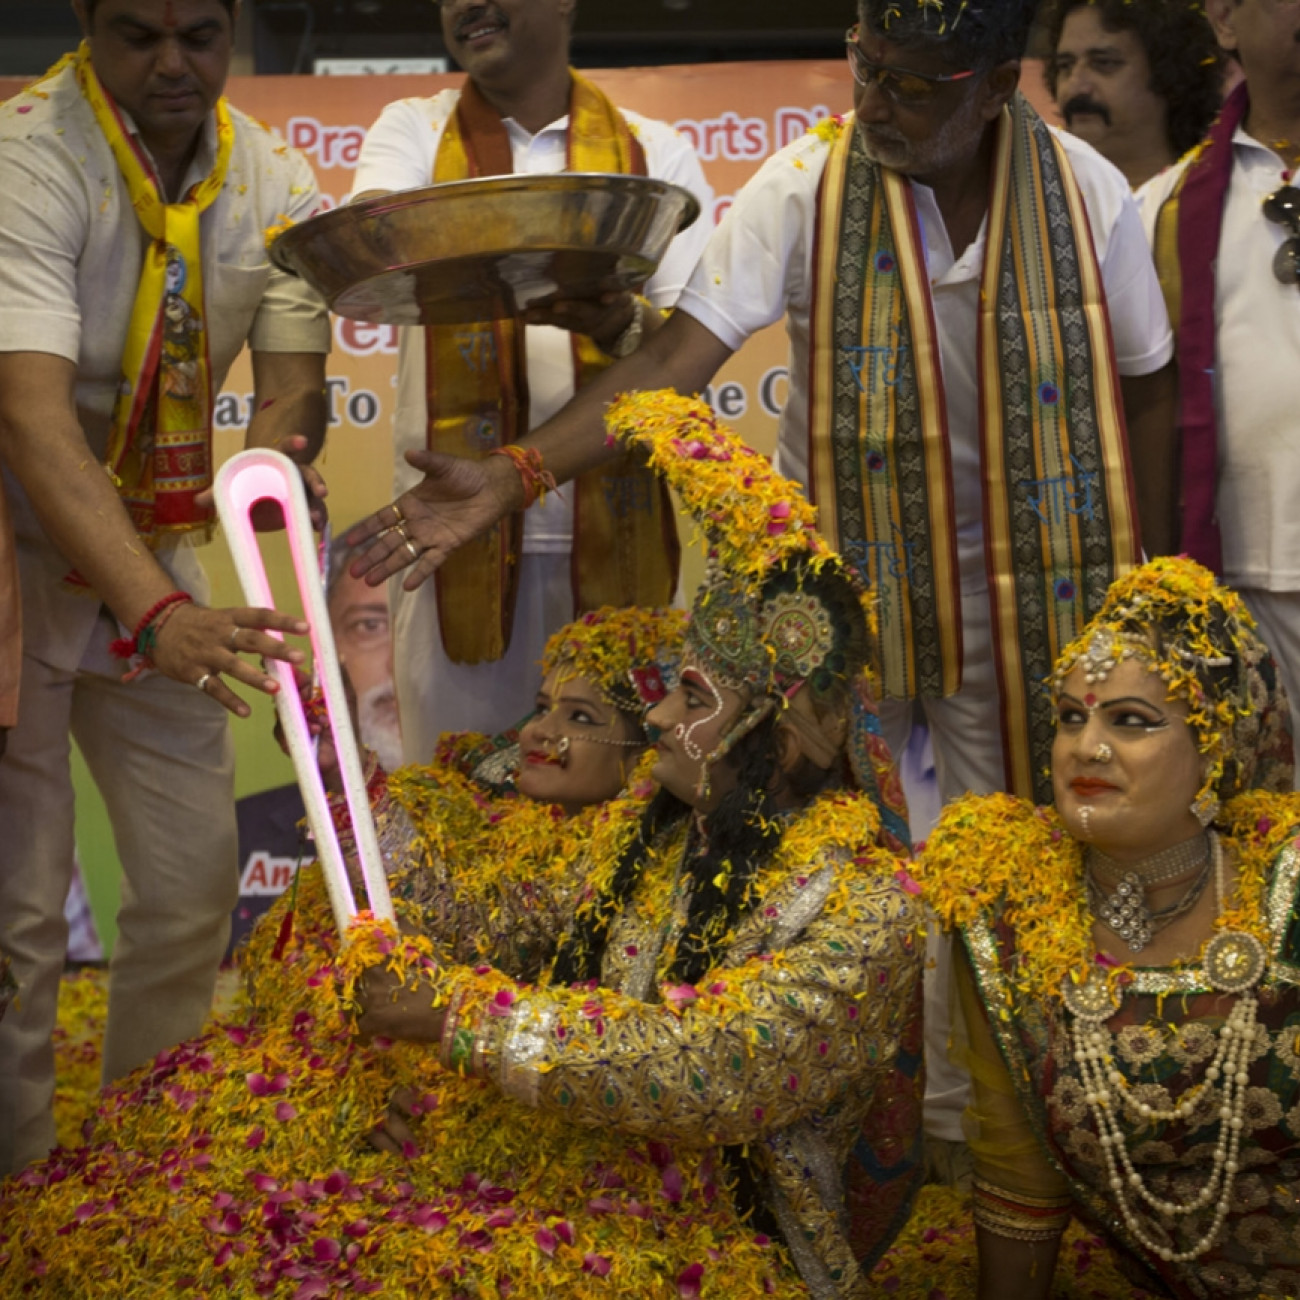 The Queen's Baton taking part in a special ceremony near the place of birth the Hindu deity Lord Krishna, in Mathura